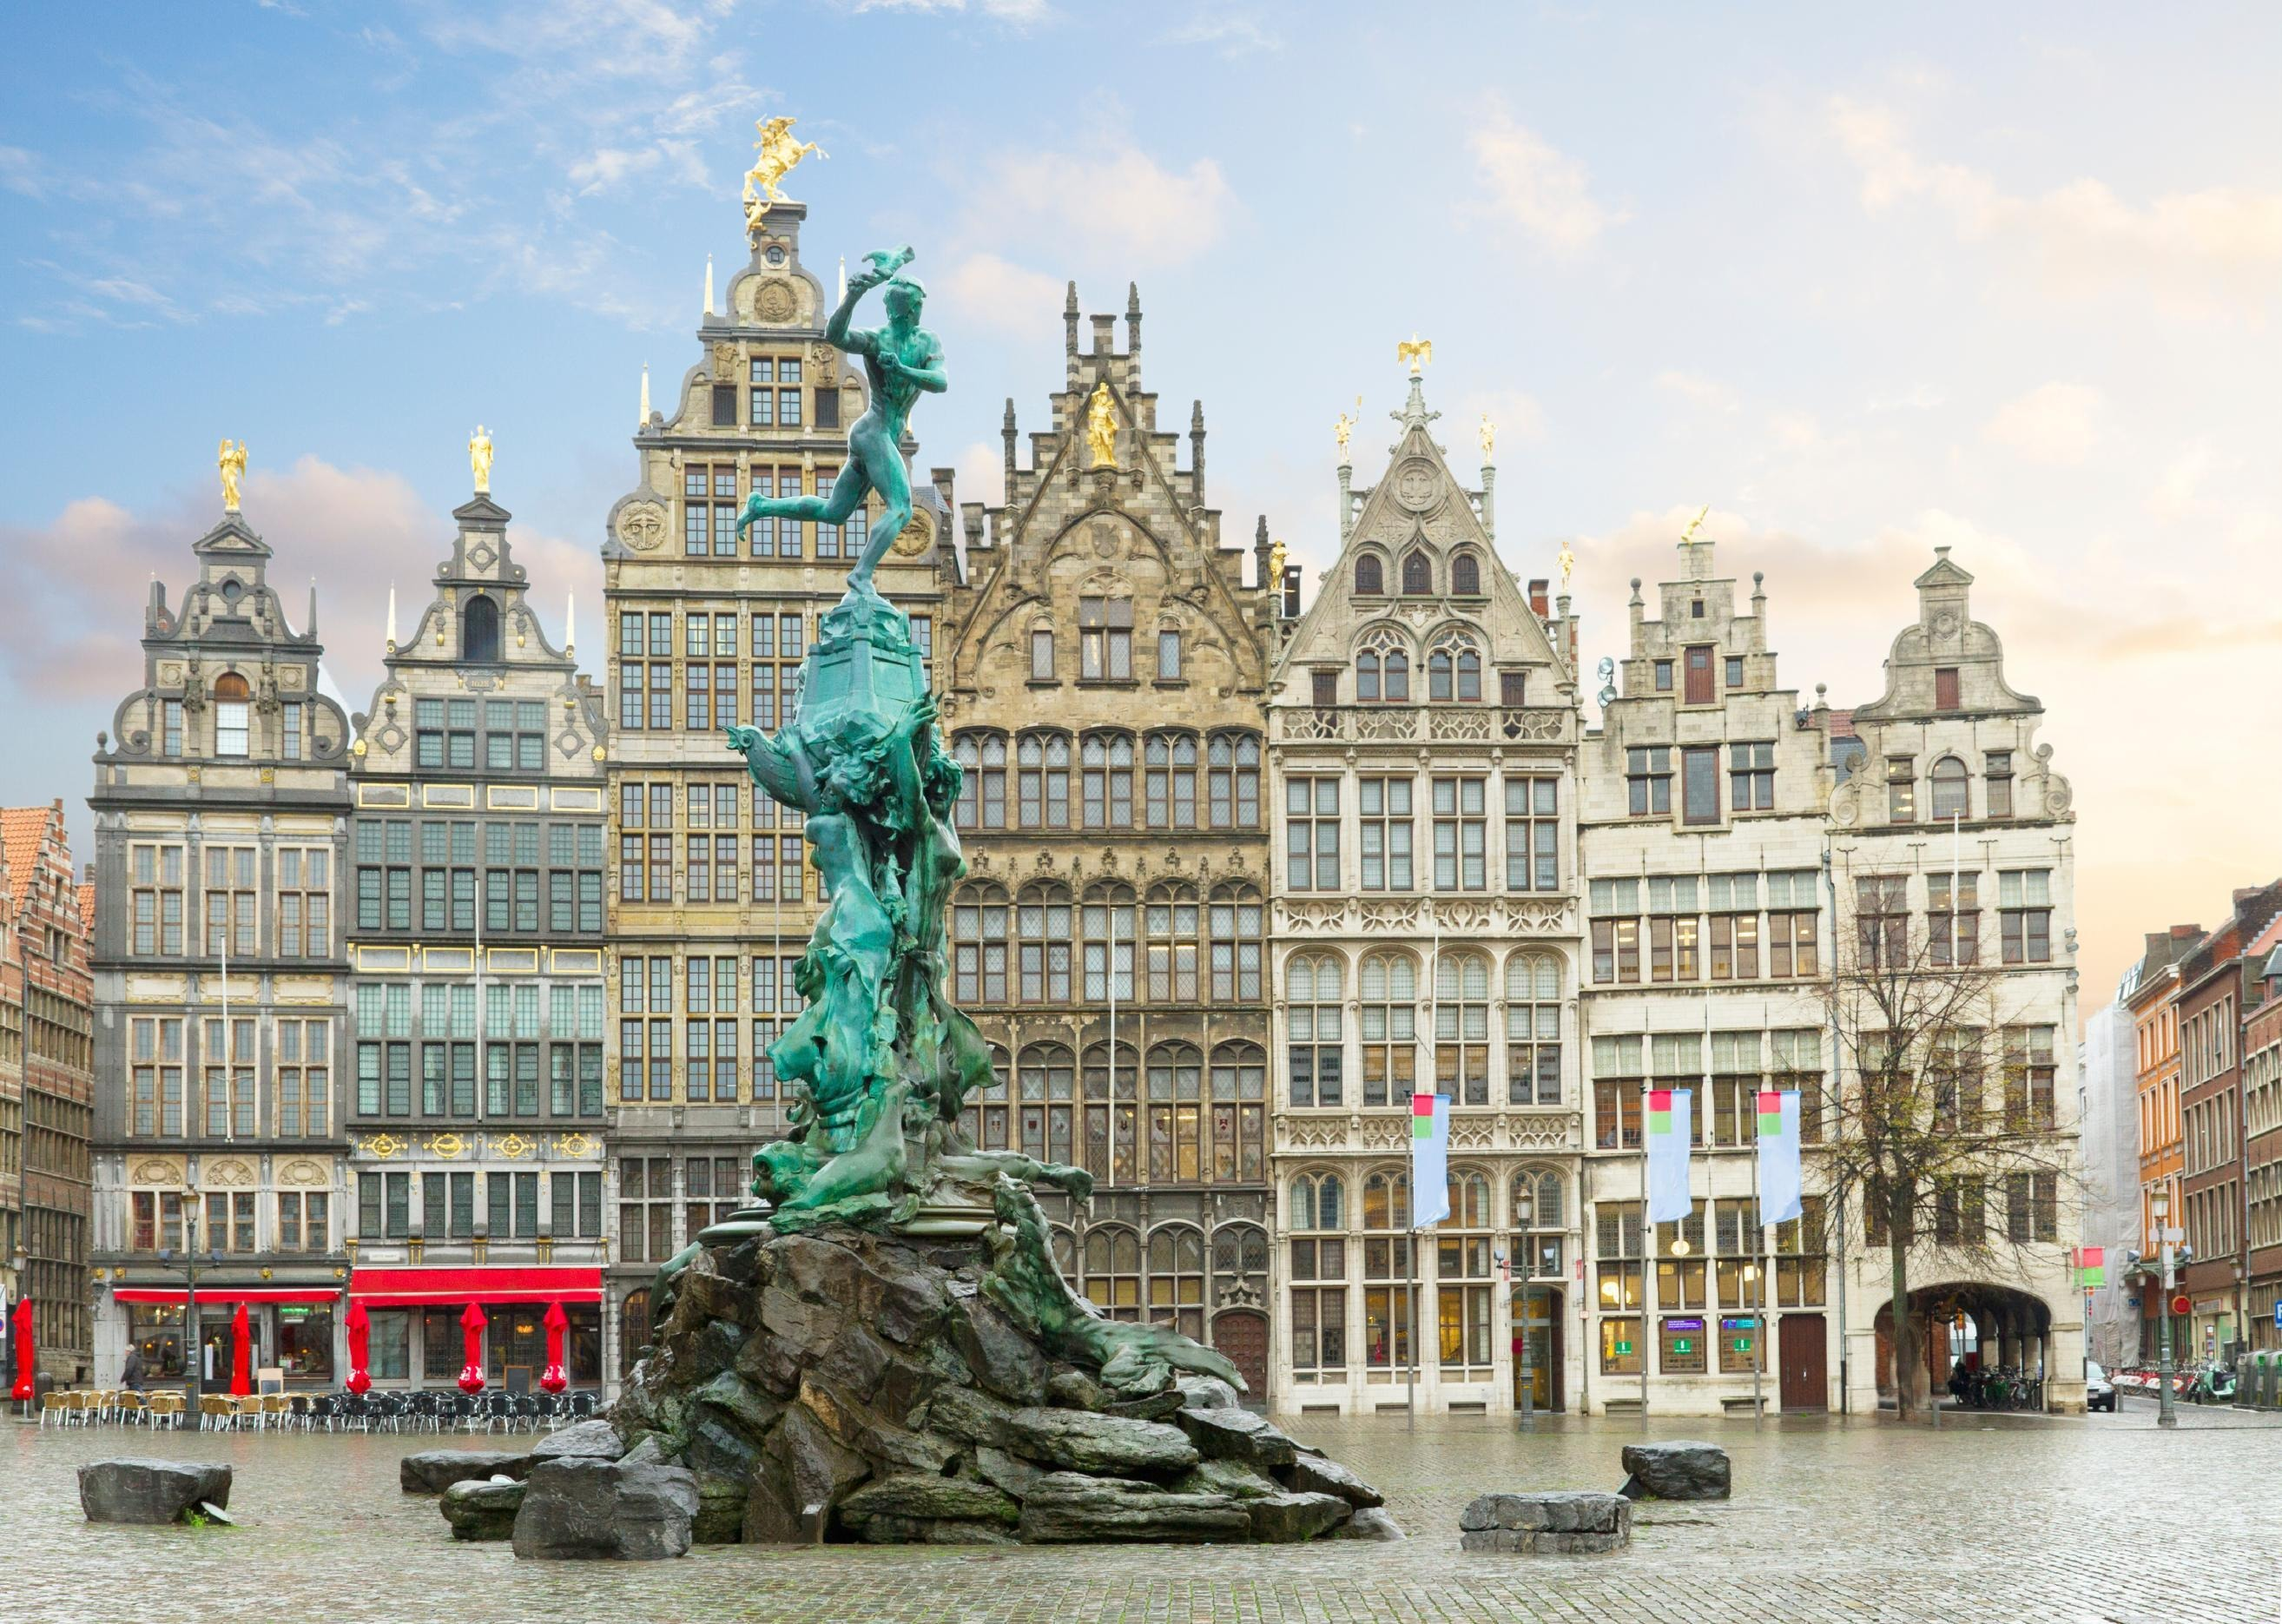 How to Spend 1 Day in Antwerp